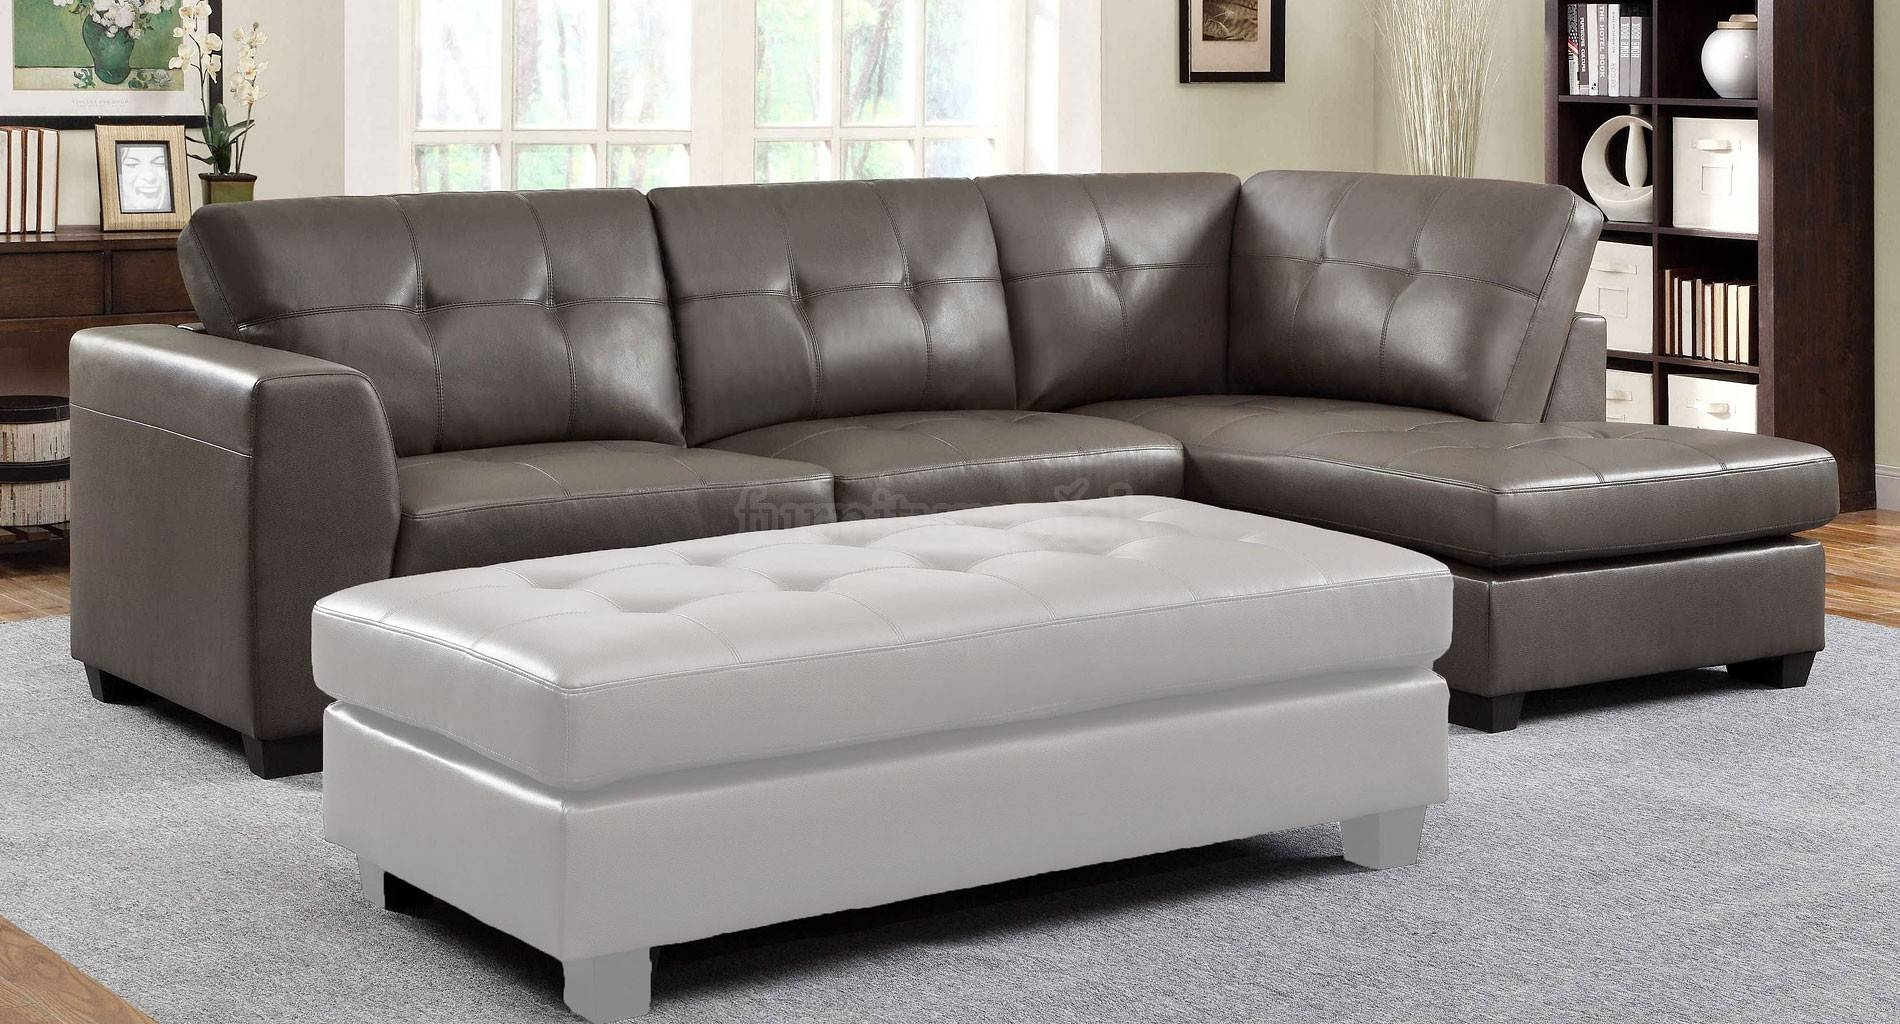 The Best Down Filled Sofas and Sectionals